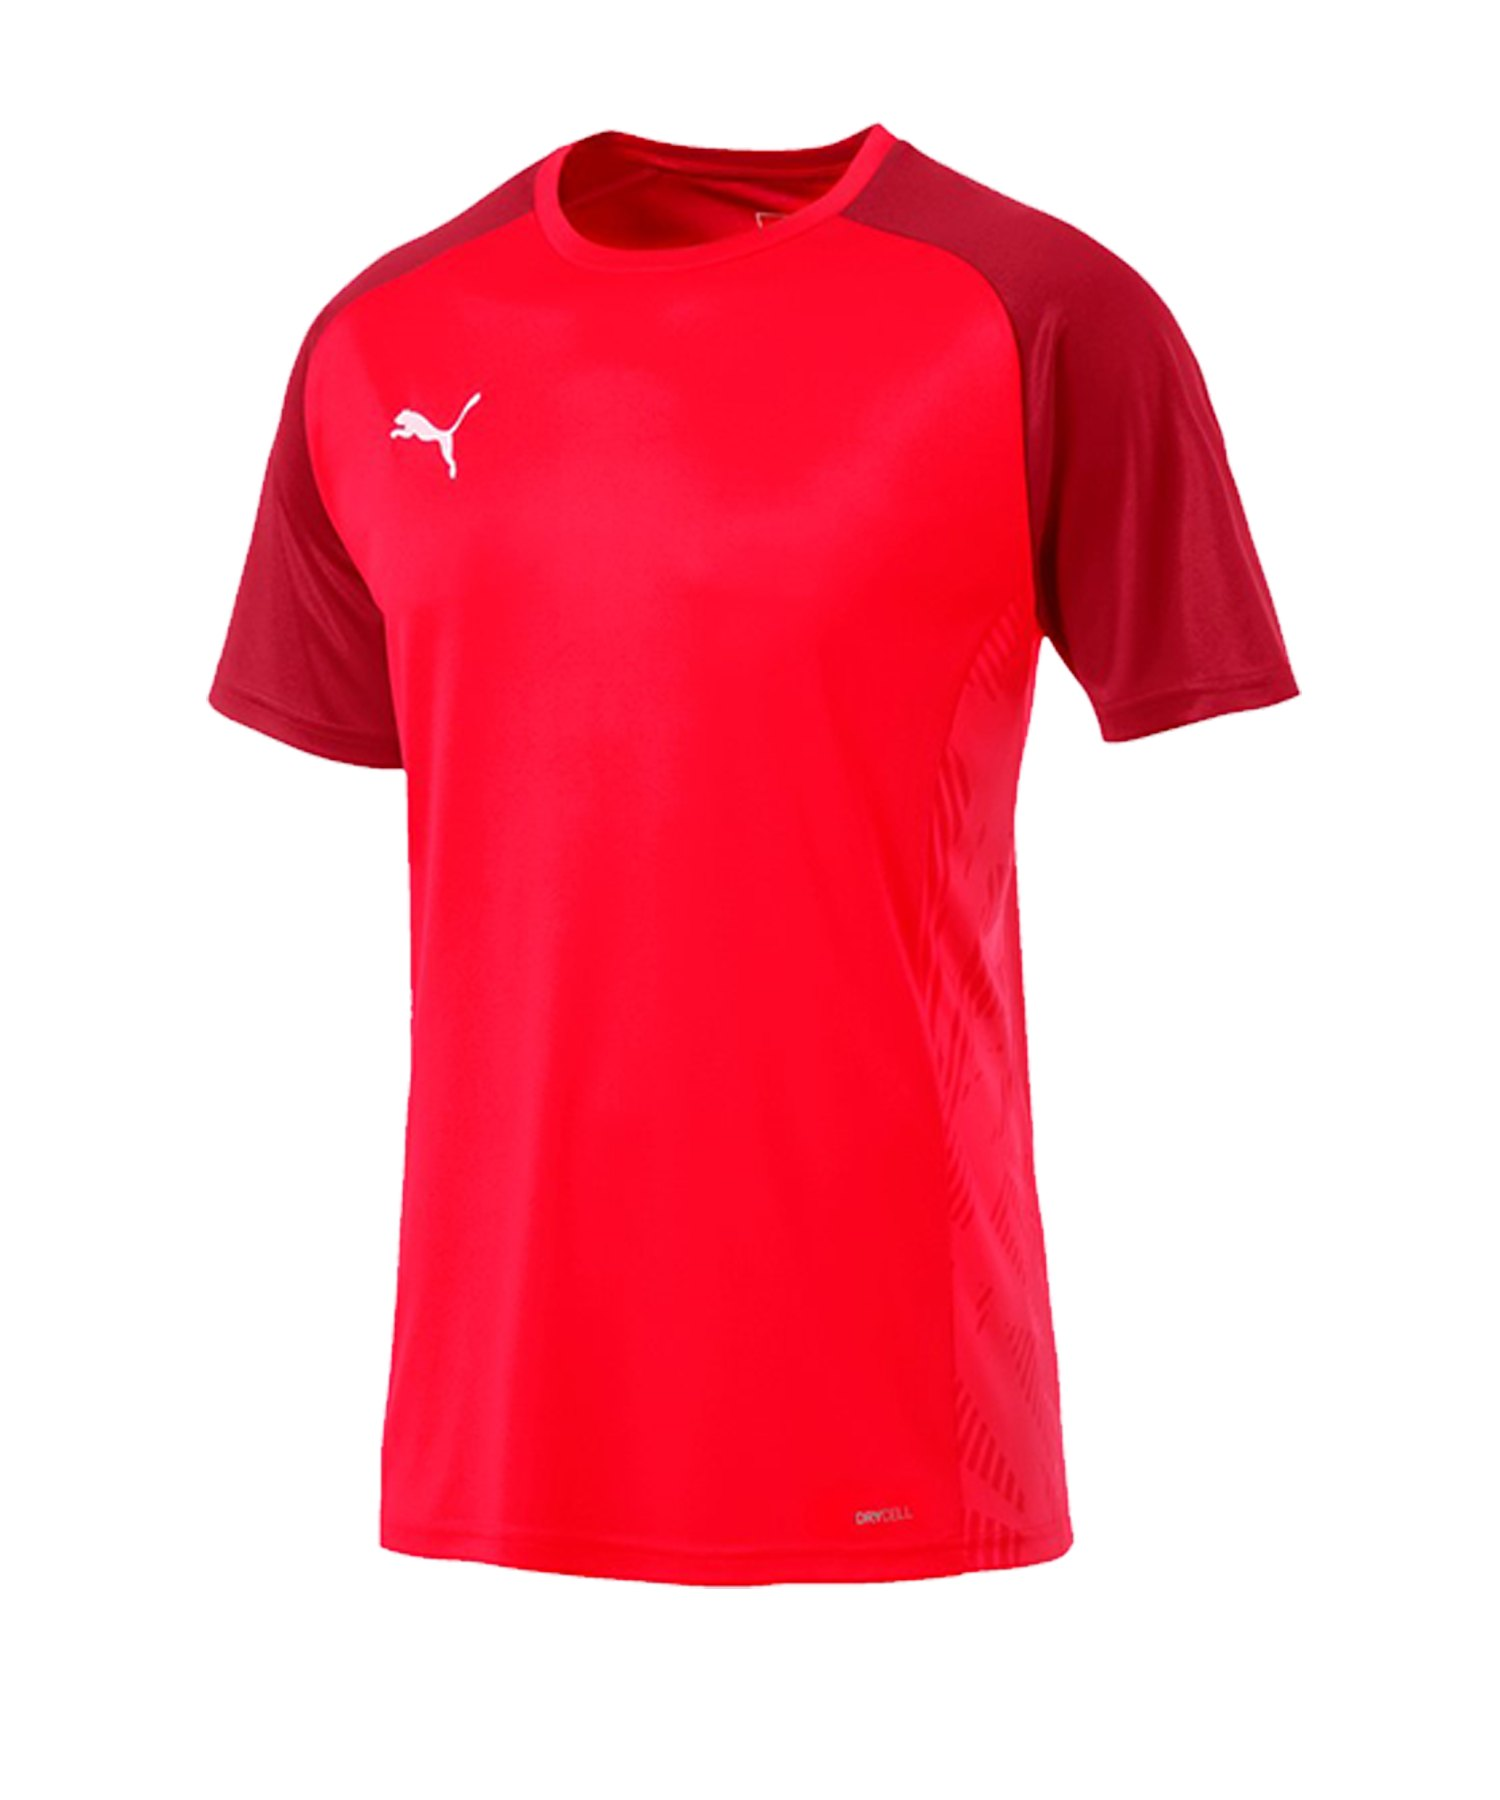 PUMA CUP Sideline Core T-Shirt Rot F01 - rot